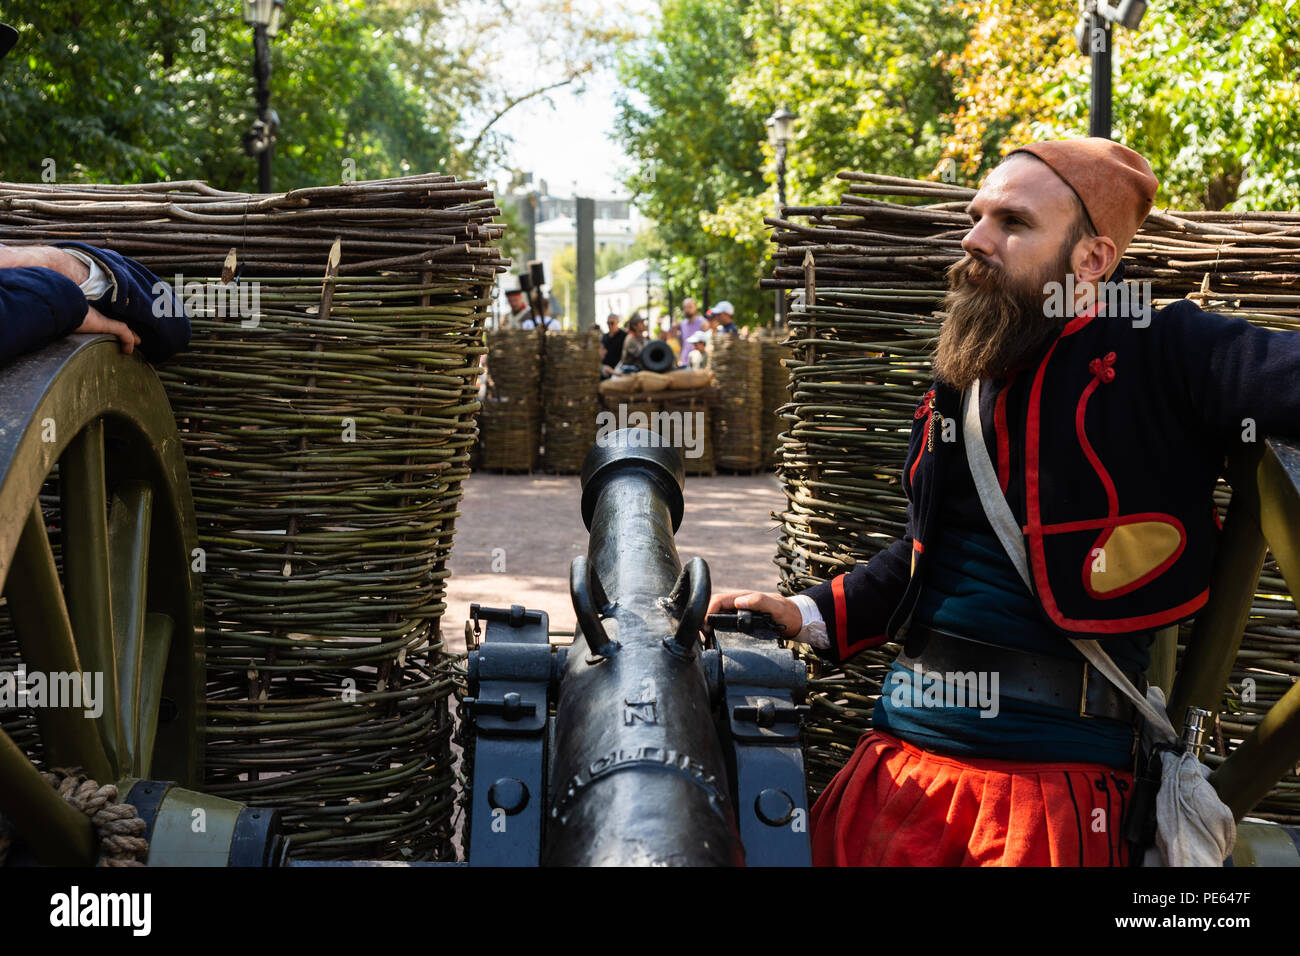 Moscow, Russia, Sunday, August 12, 2018.The Eights International history festival 'Times & Epochs' starts in Moscow. The exhibition period is August 10-22. The venue for the festival is Boulevard Ring (9 km or 6 mi long). Historical periods and events from the Stone Age to the end of the XX century are presented by international teams at 30 locations. French army gun station against the Russian army gun station. The Siege of Sevastopol. Crimean War period of 1853—1856. Credit: Alex's Pictures/Alamy Live News - Stock Image